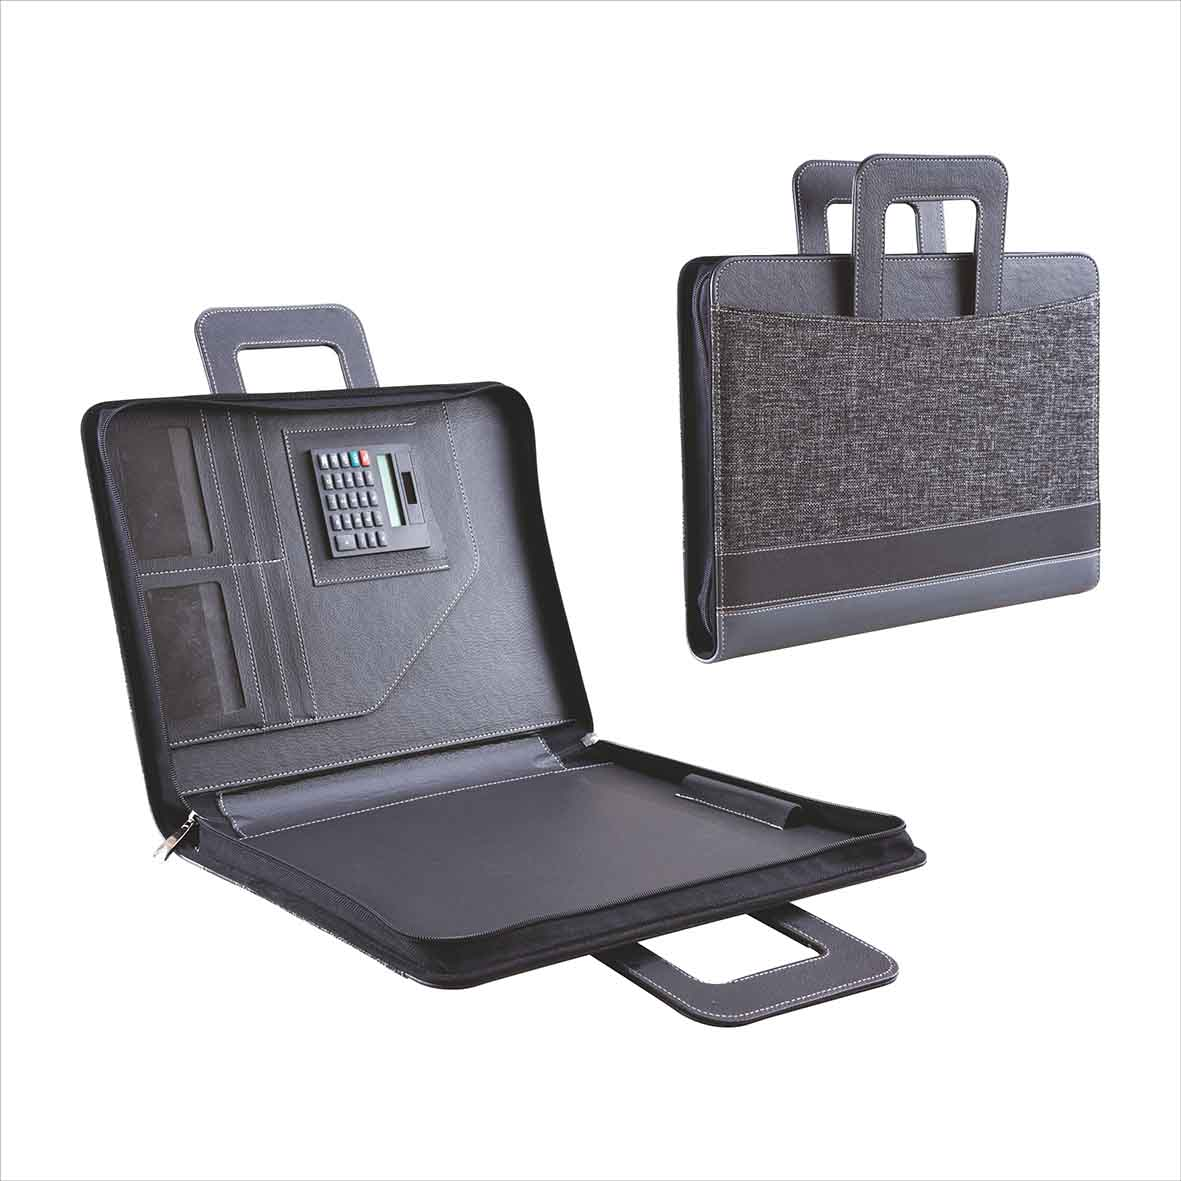 748 SUIT CASE - SECRETARIAL